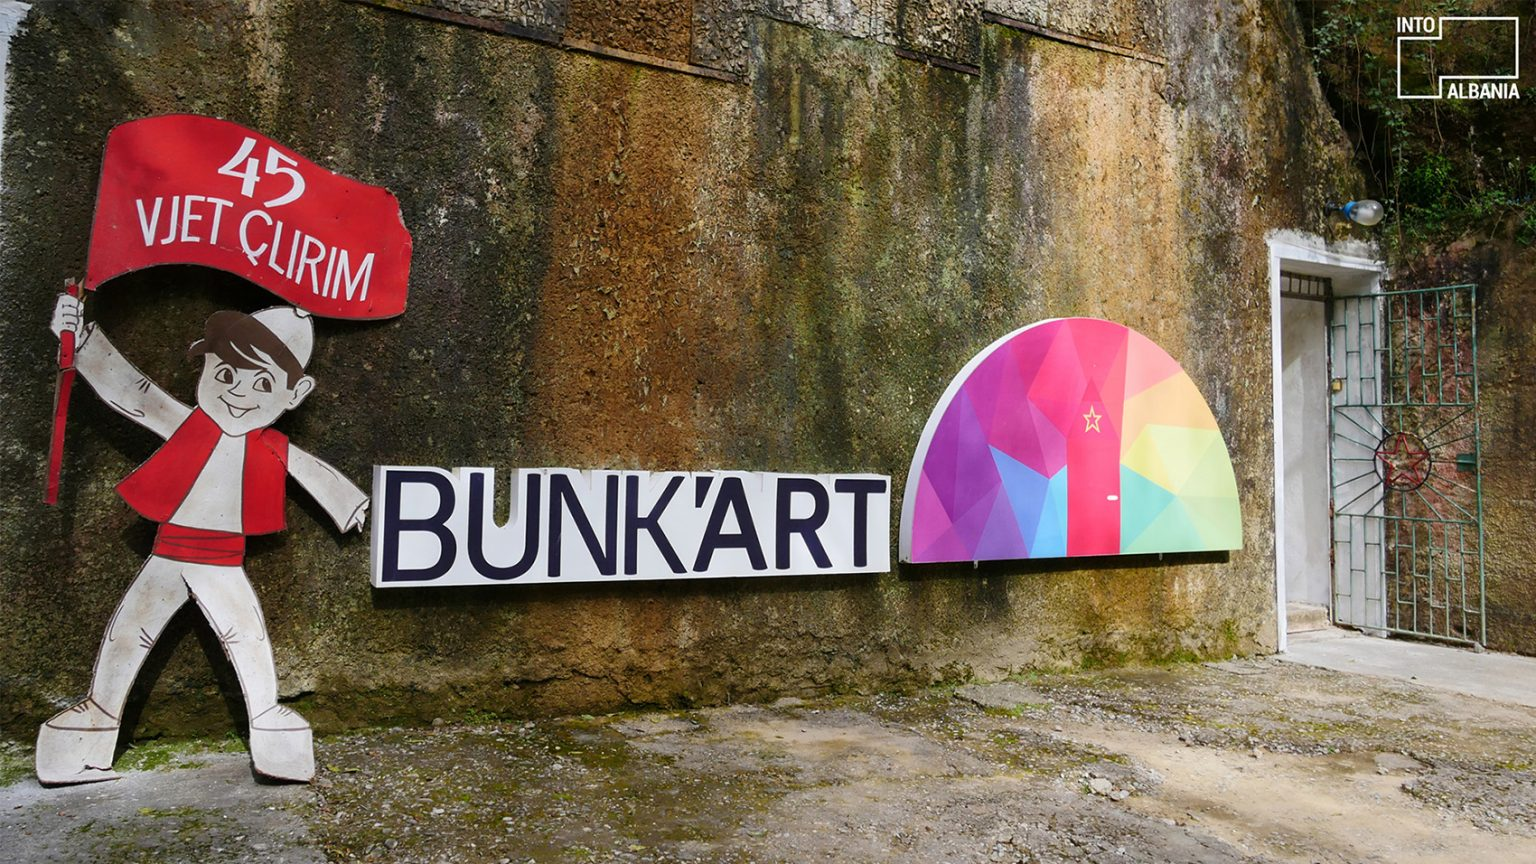 Bunk'Art 1, Tirana, photo by IntoAlbania